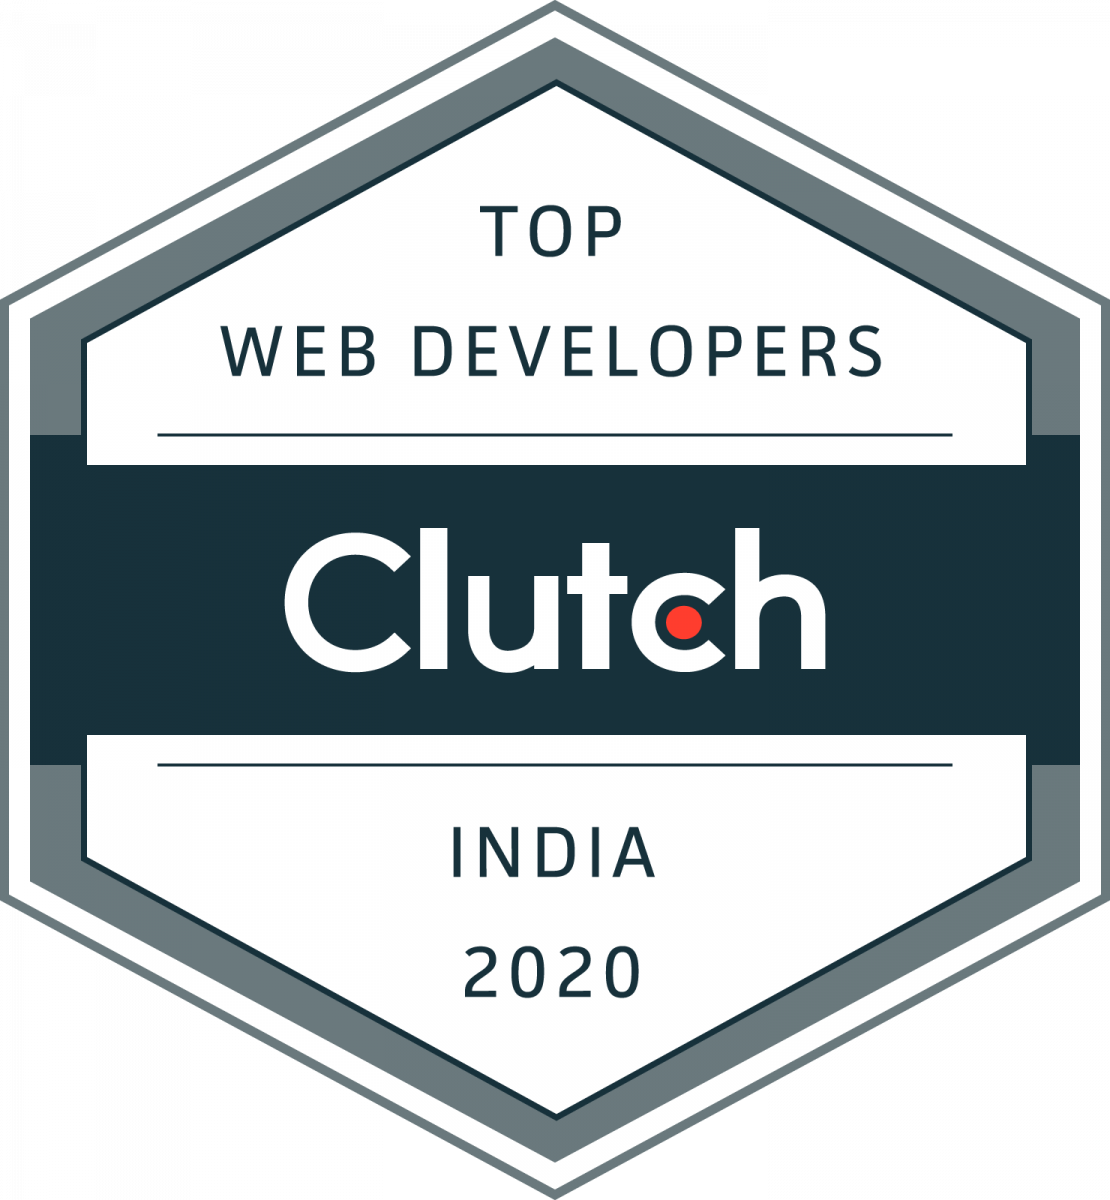 top web developers in India 2020